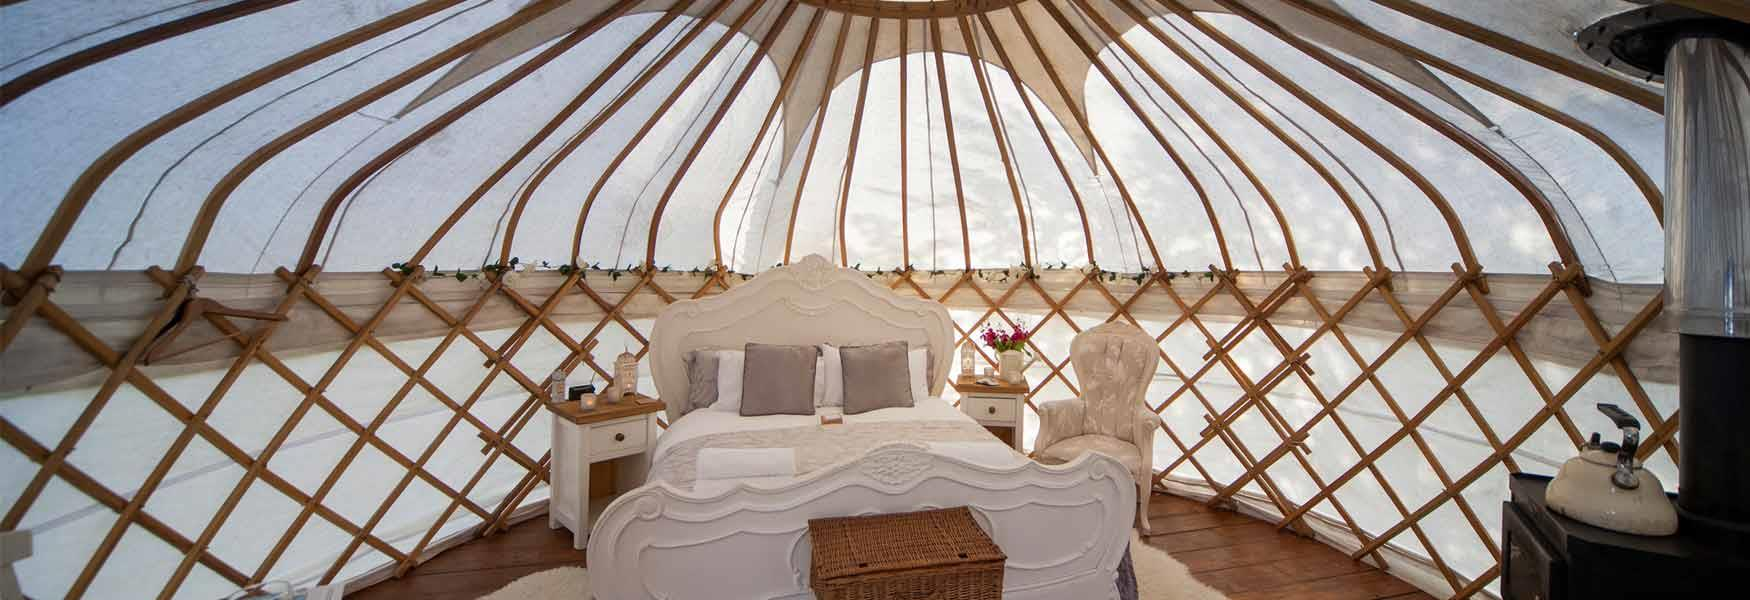 Give Glamping a go!